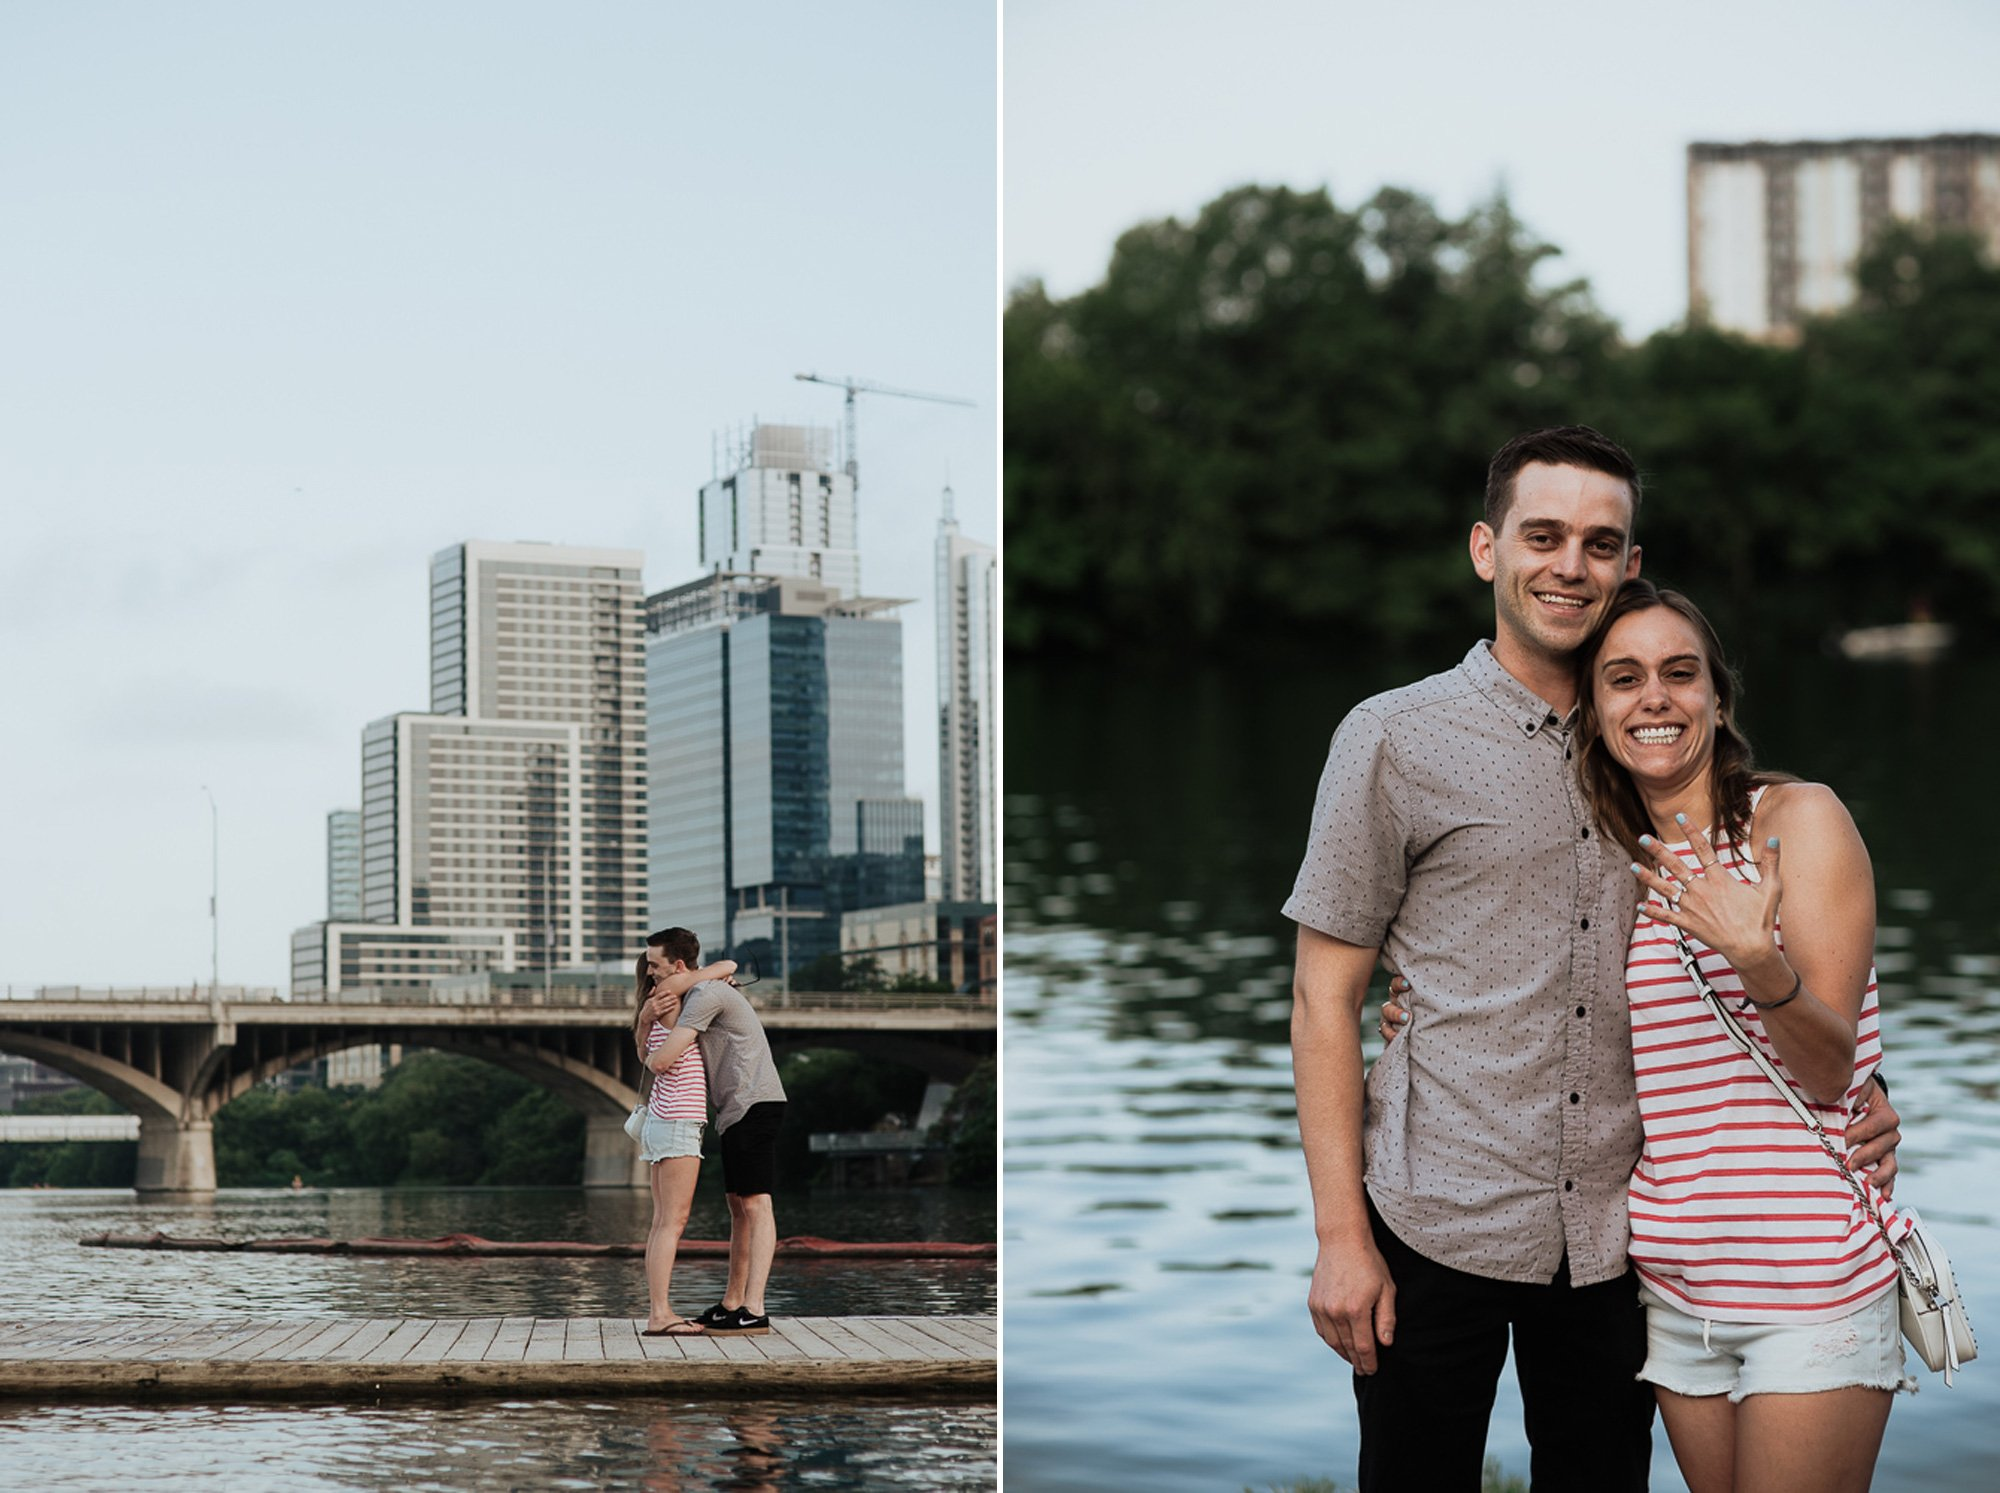 austin proposal with the skyline, cute couple gets engaged in downtown austin at sunrise, destination proposal photographer austin texas, central texas proposal photos